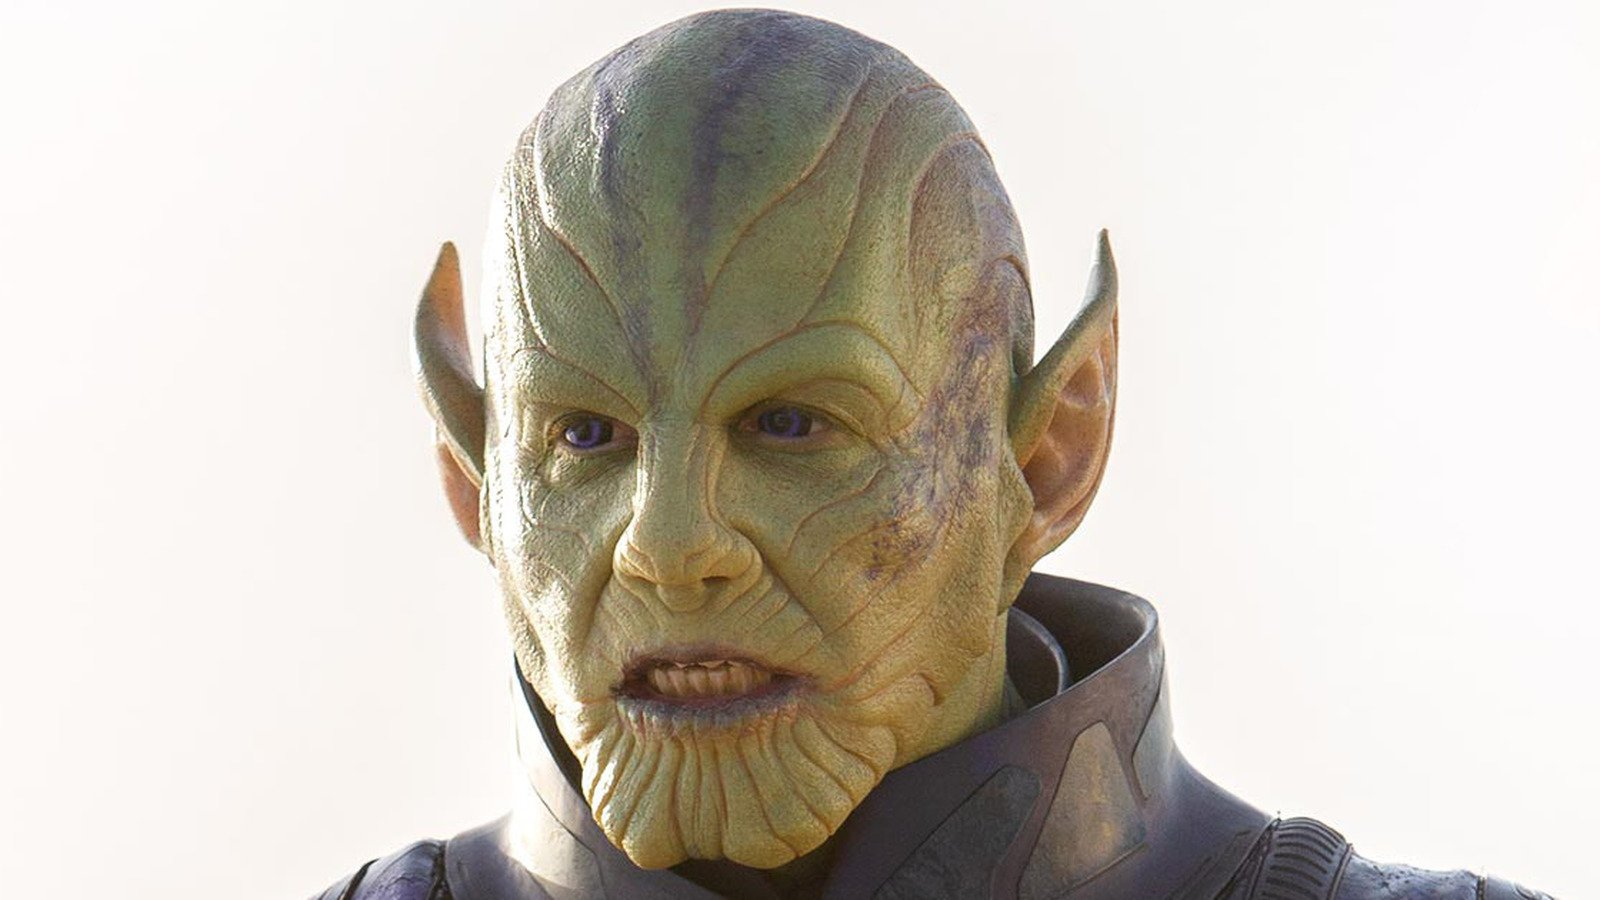 What These Movie Aliens Look Like Without Makeup